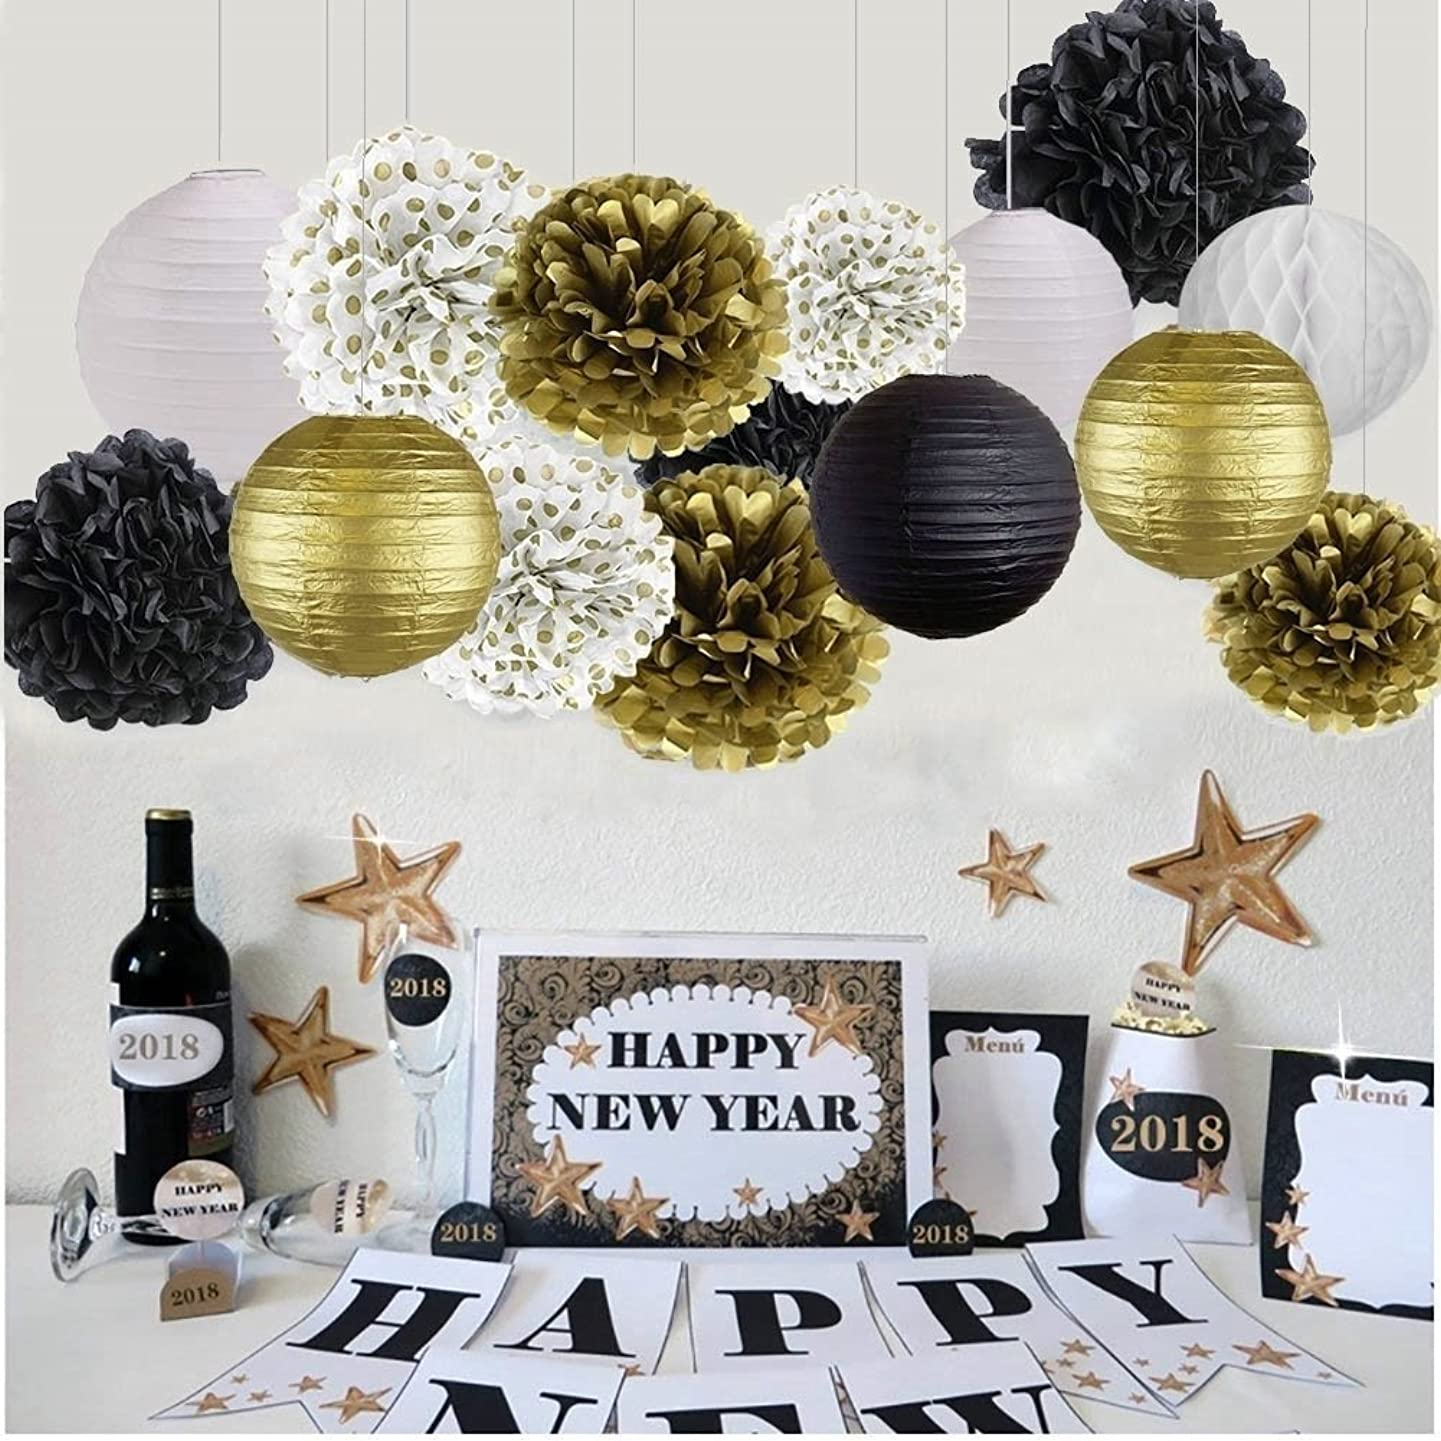 New Years Decorations Gold Black White Party Decor Kit Tissue Paper Pom Poms Flower Paper Lantern Paper Honeycomb Balls Party Hanging Decoration Favor for Birthday Decoration Black Gold Themed Decor